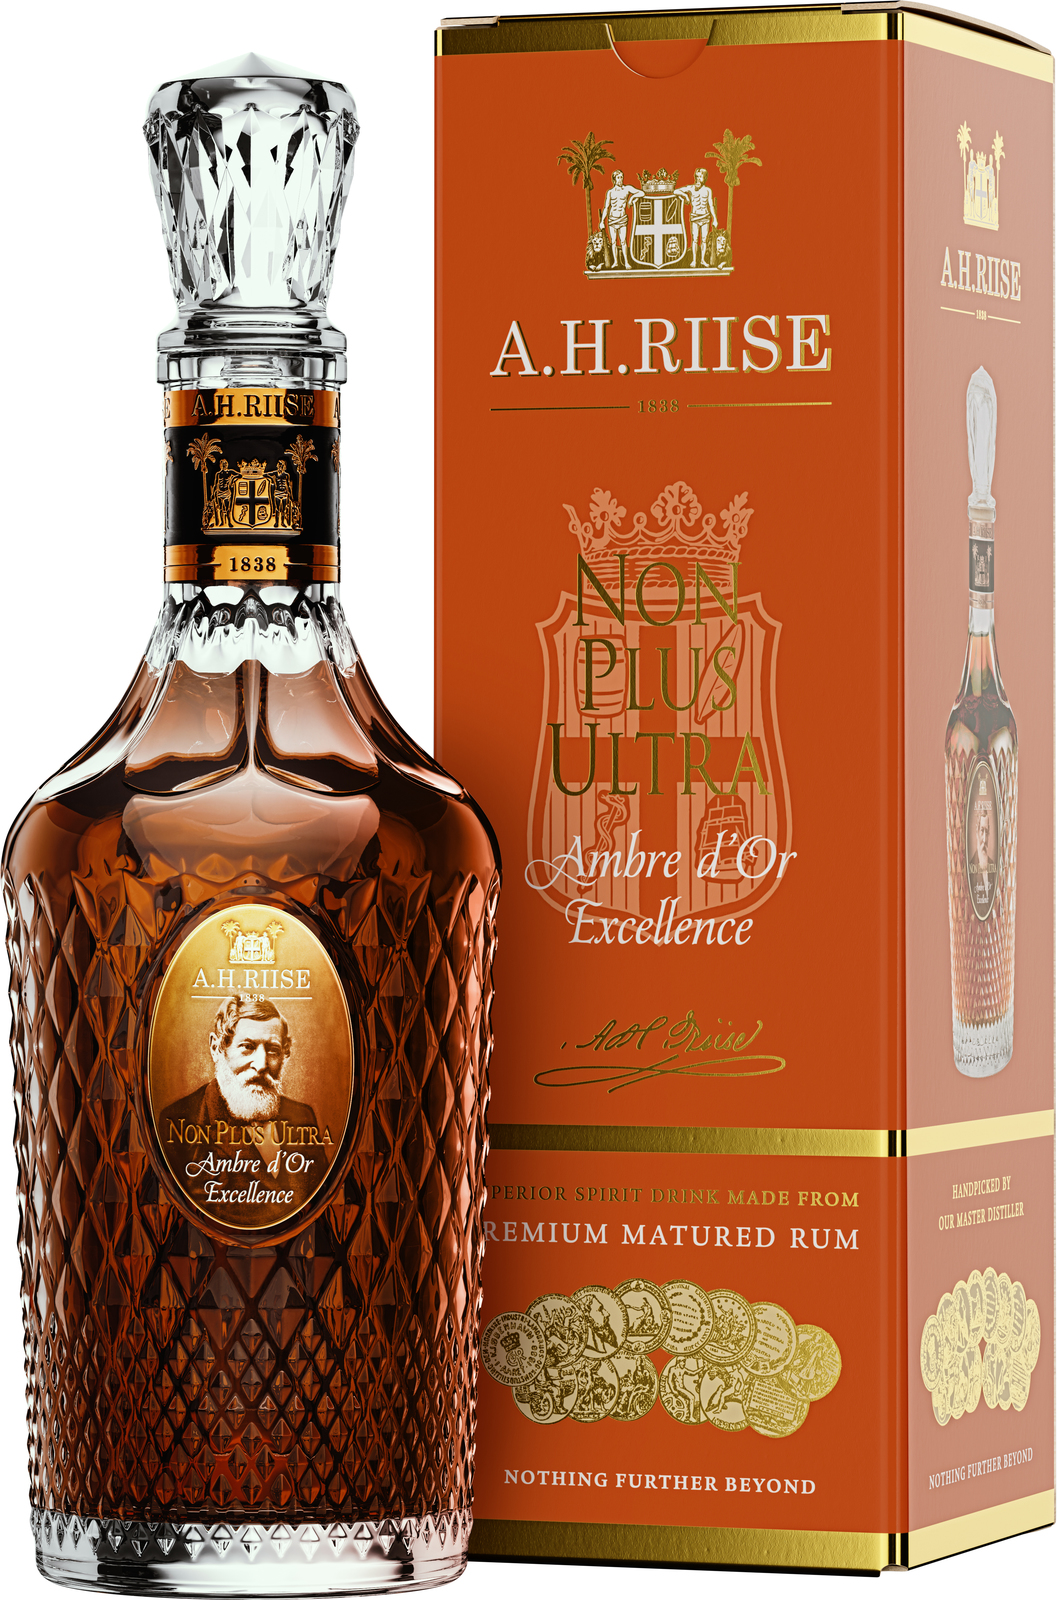 A.H.Riise NON PLUS ULTRA Ambre d´Or Excellence, 42%, 0,7l